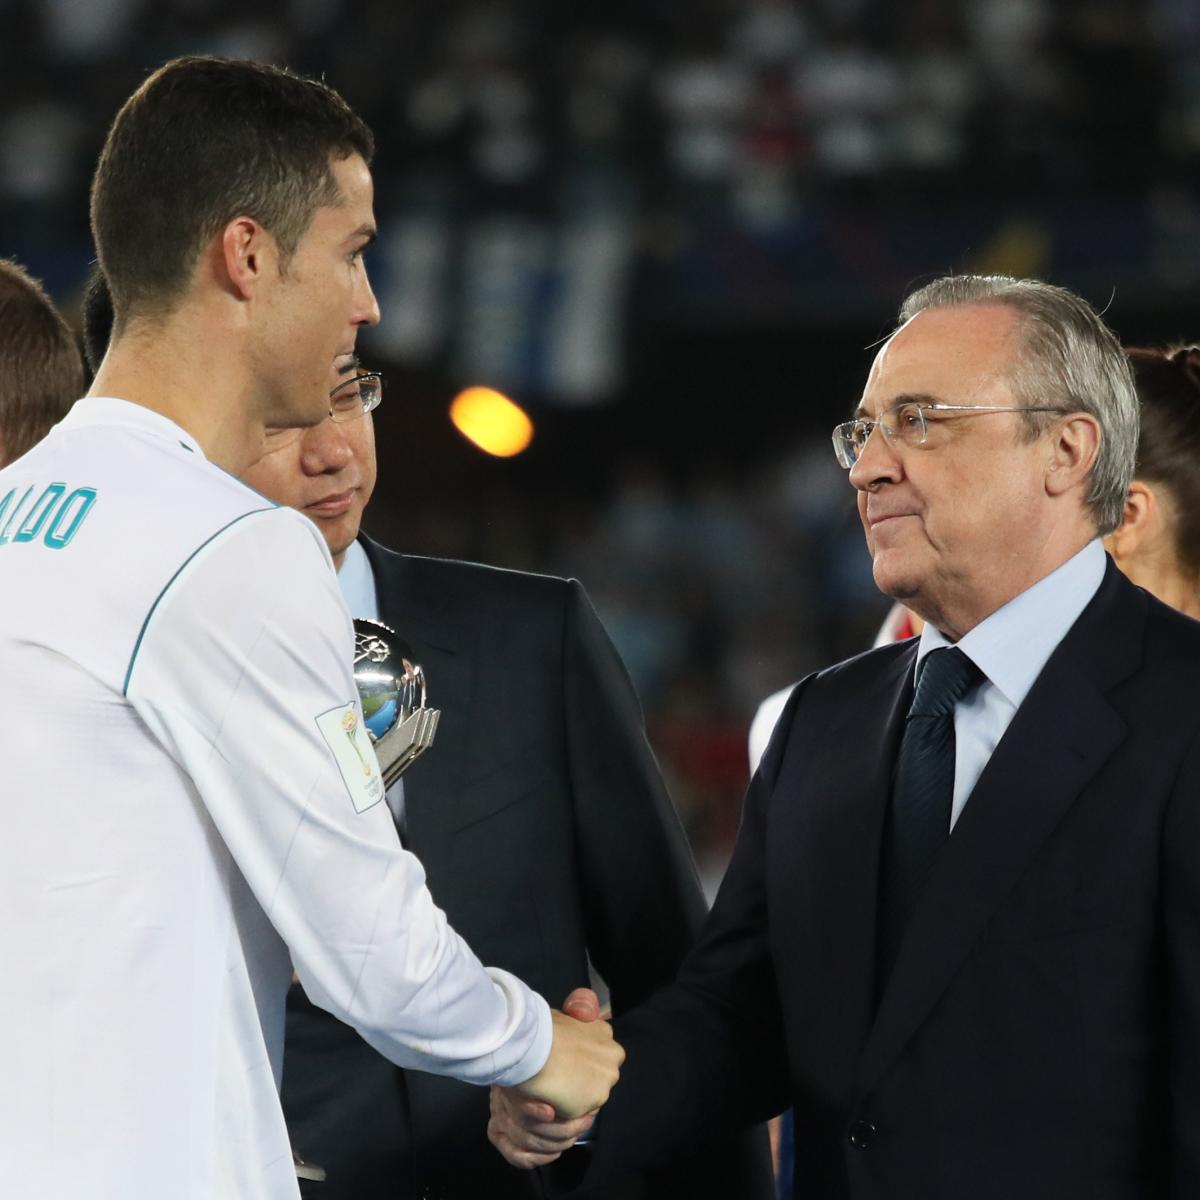 Florentino Perez Says Cristiano Ronaldo Will Return to Real Madrid 'One Day' | Bleacher Report | Latest News, Videos and Highlights